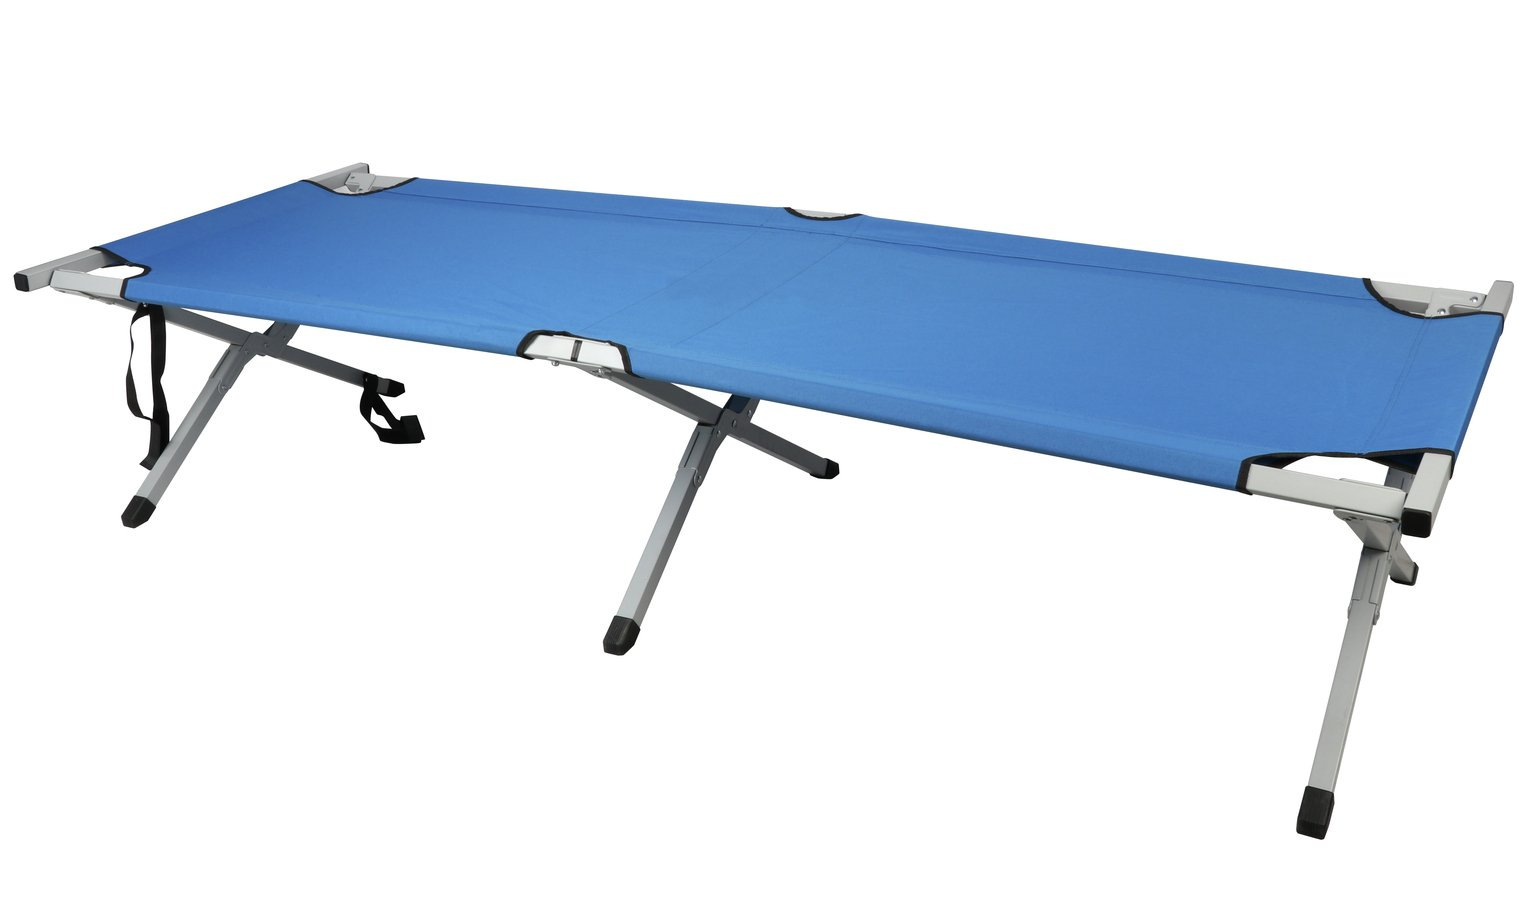 Image of Folding Camping Bed - Single